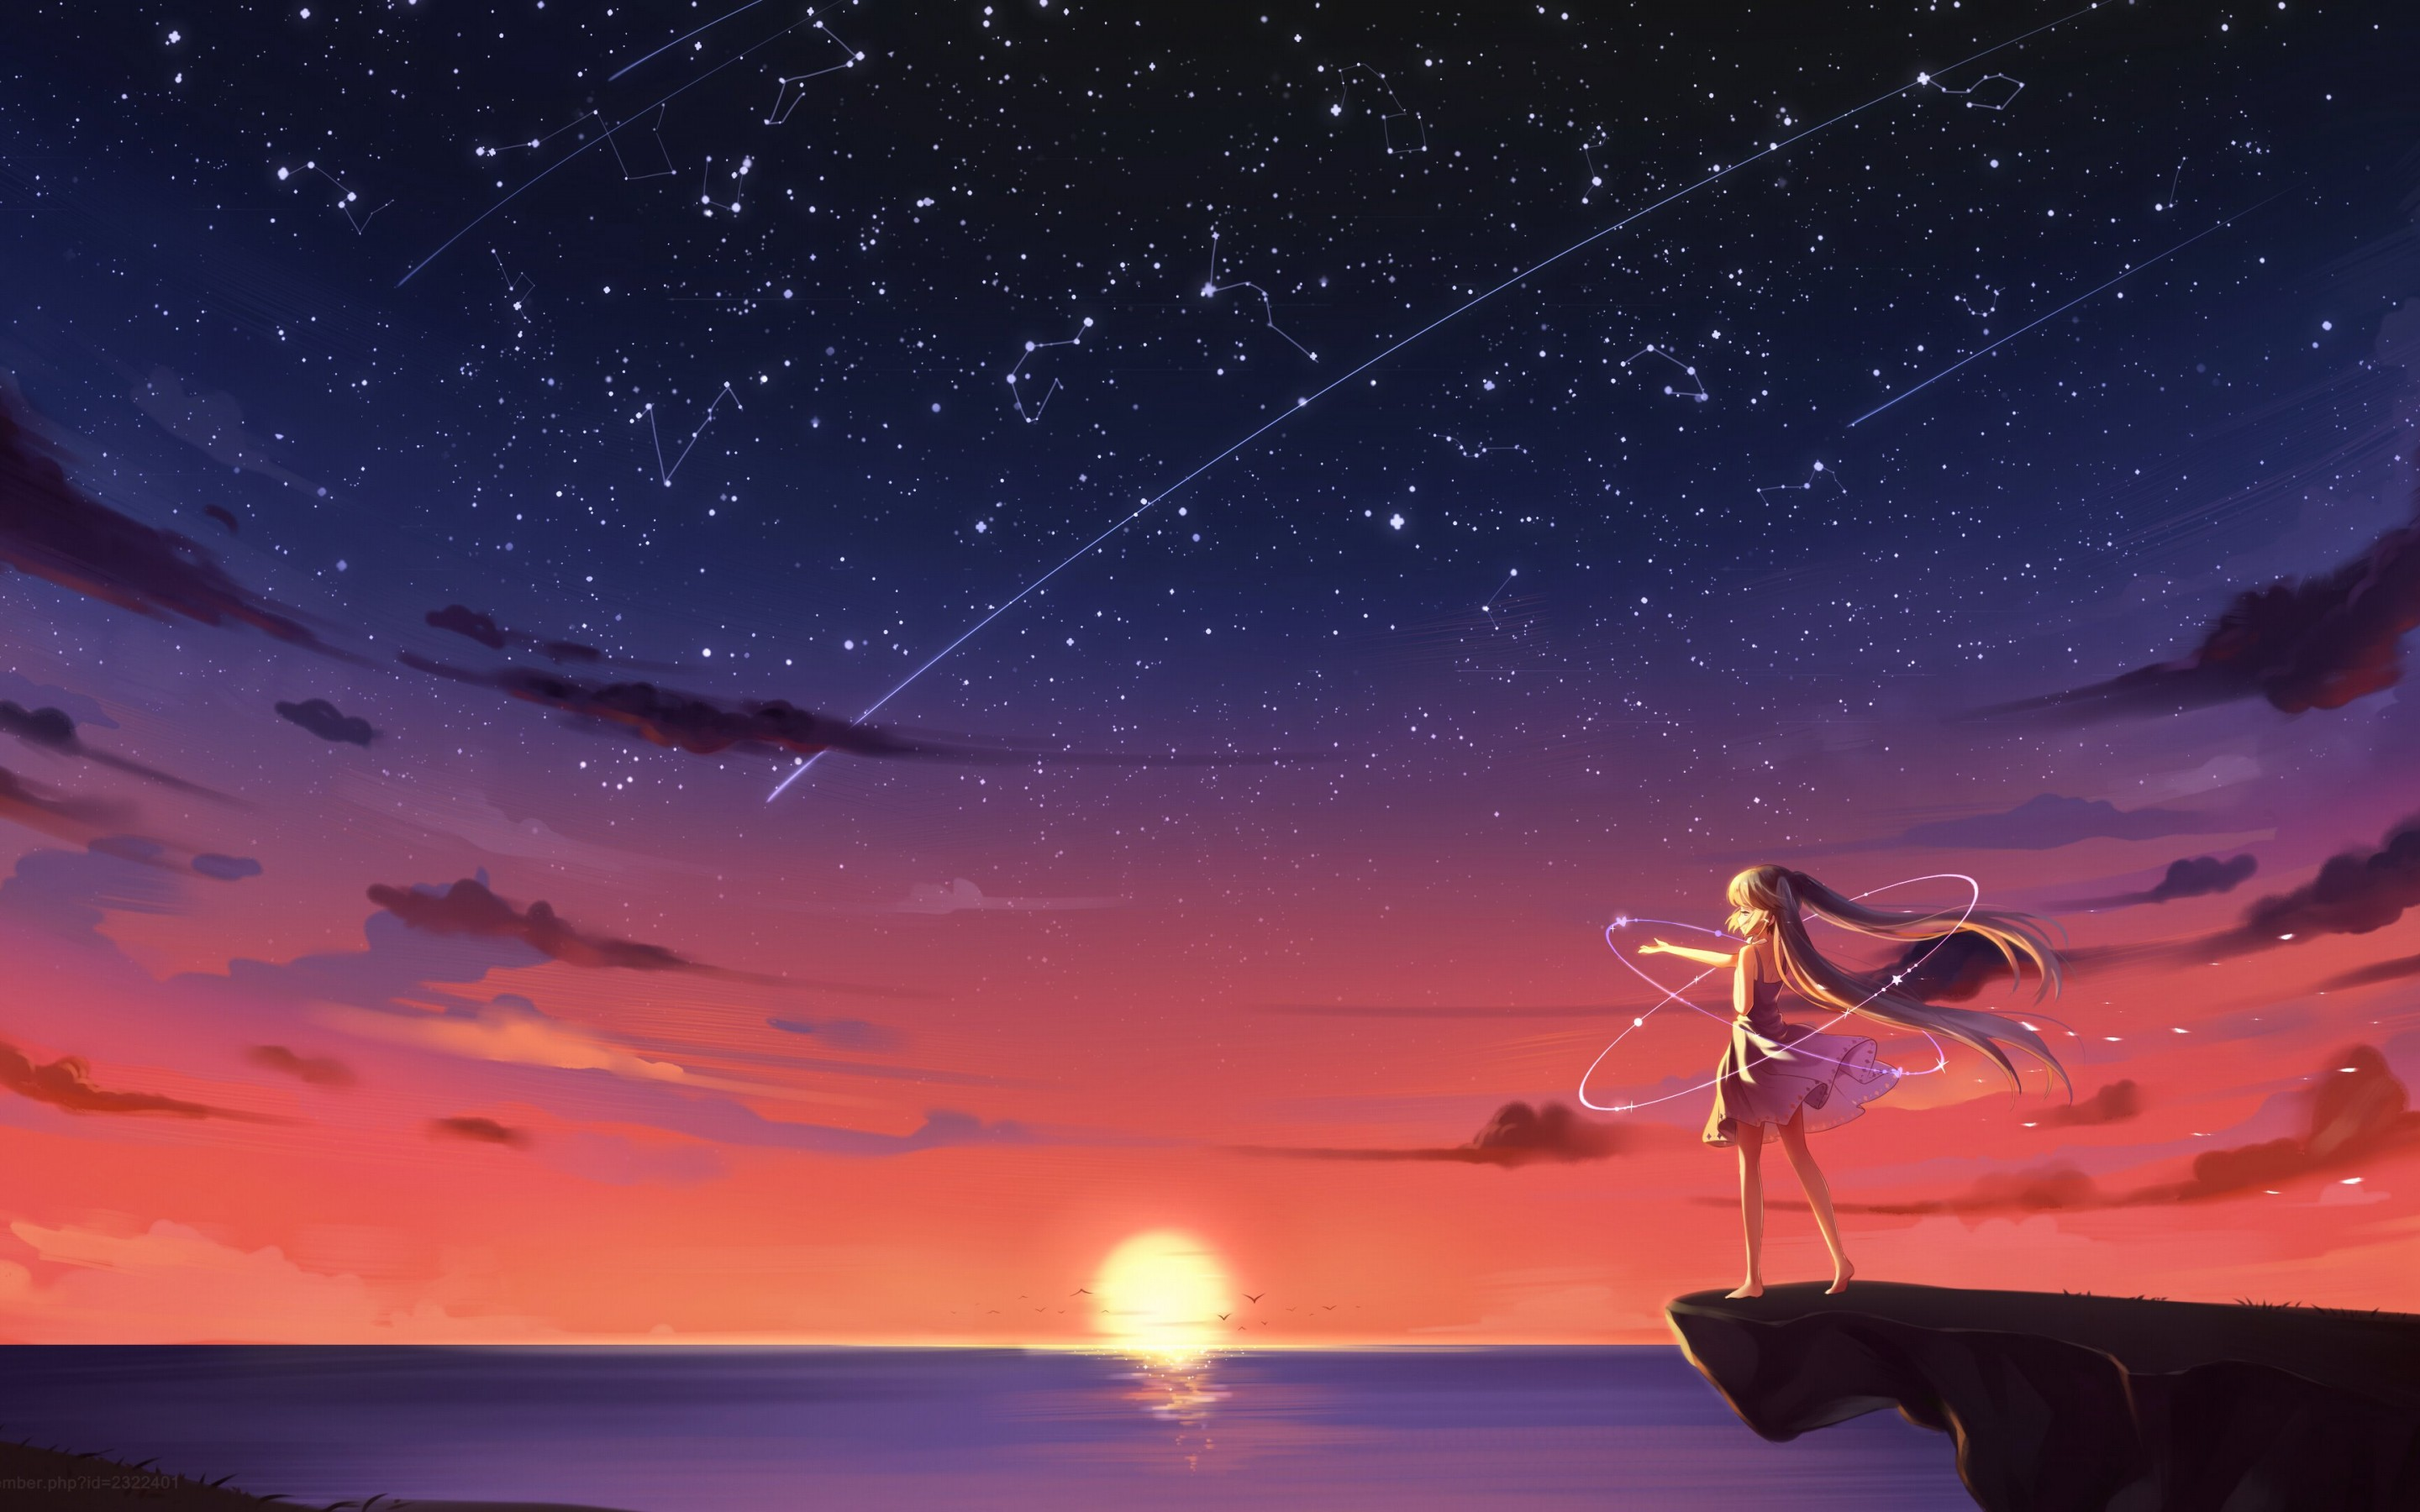 4k Anime Landscape Wallpaper Posted By Zoey Sellers